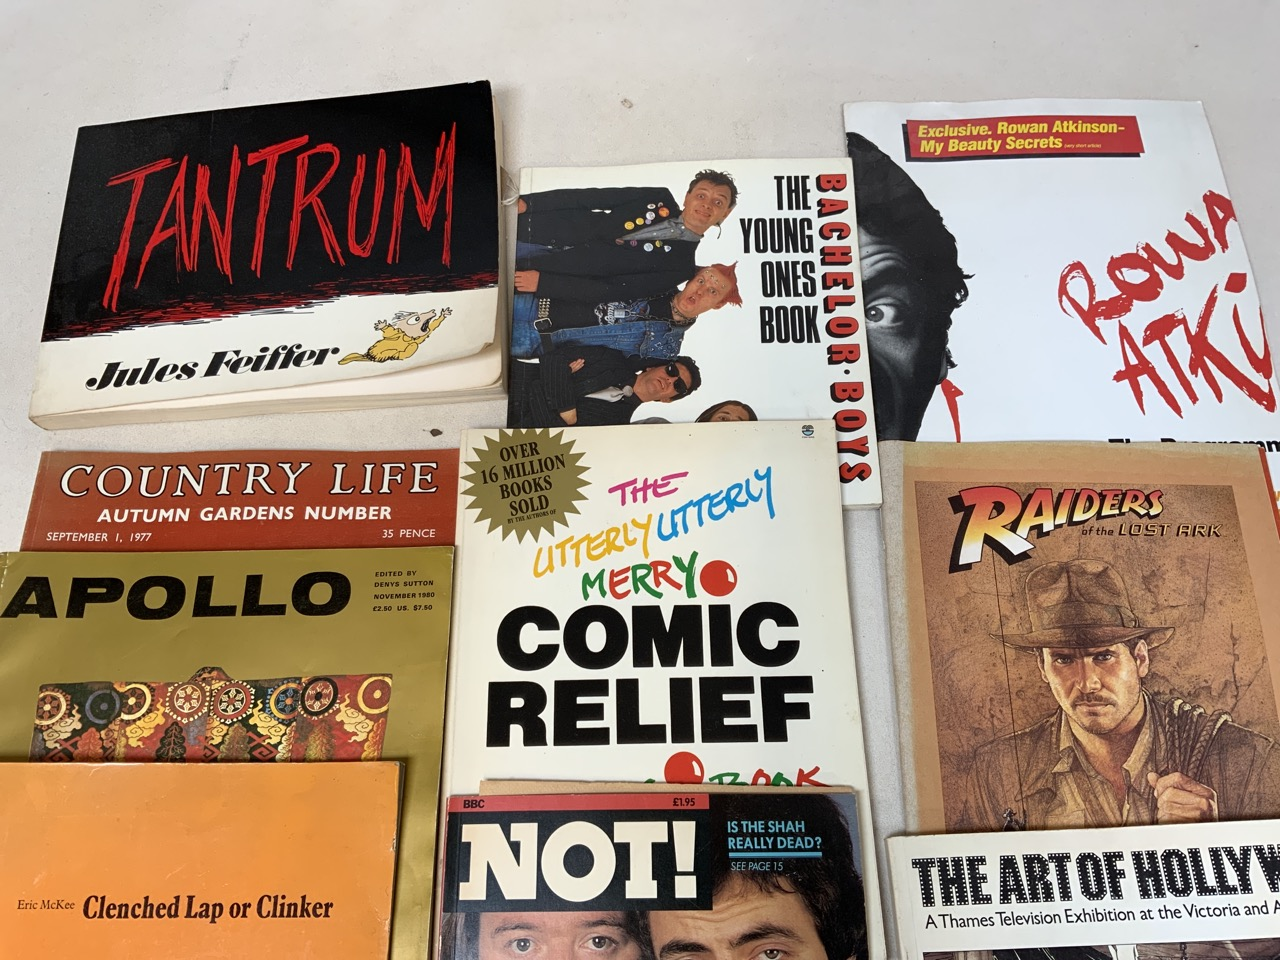 A collection of fiction and non-fictions titles to include Tantrum by Jules Feiffer, Spike - Image 2 of 3